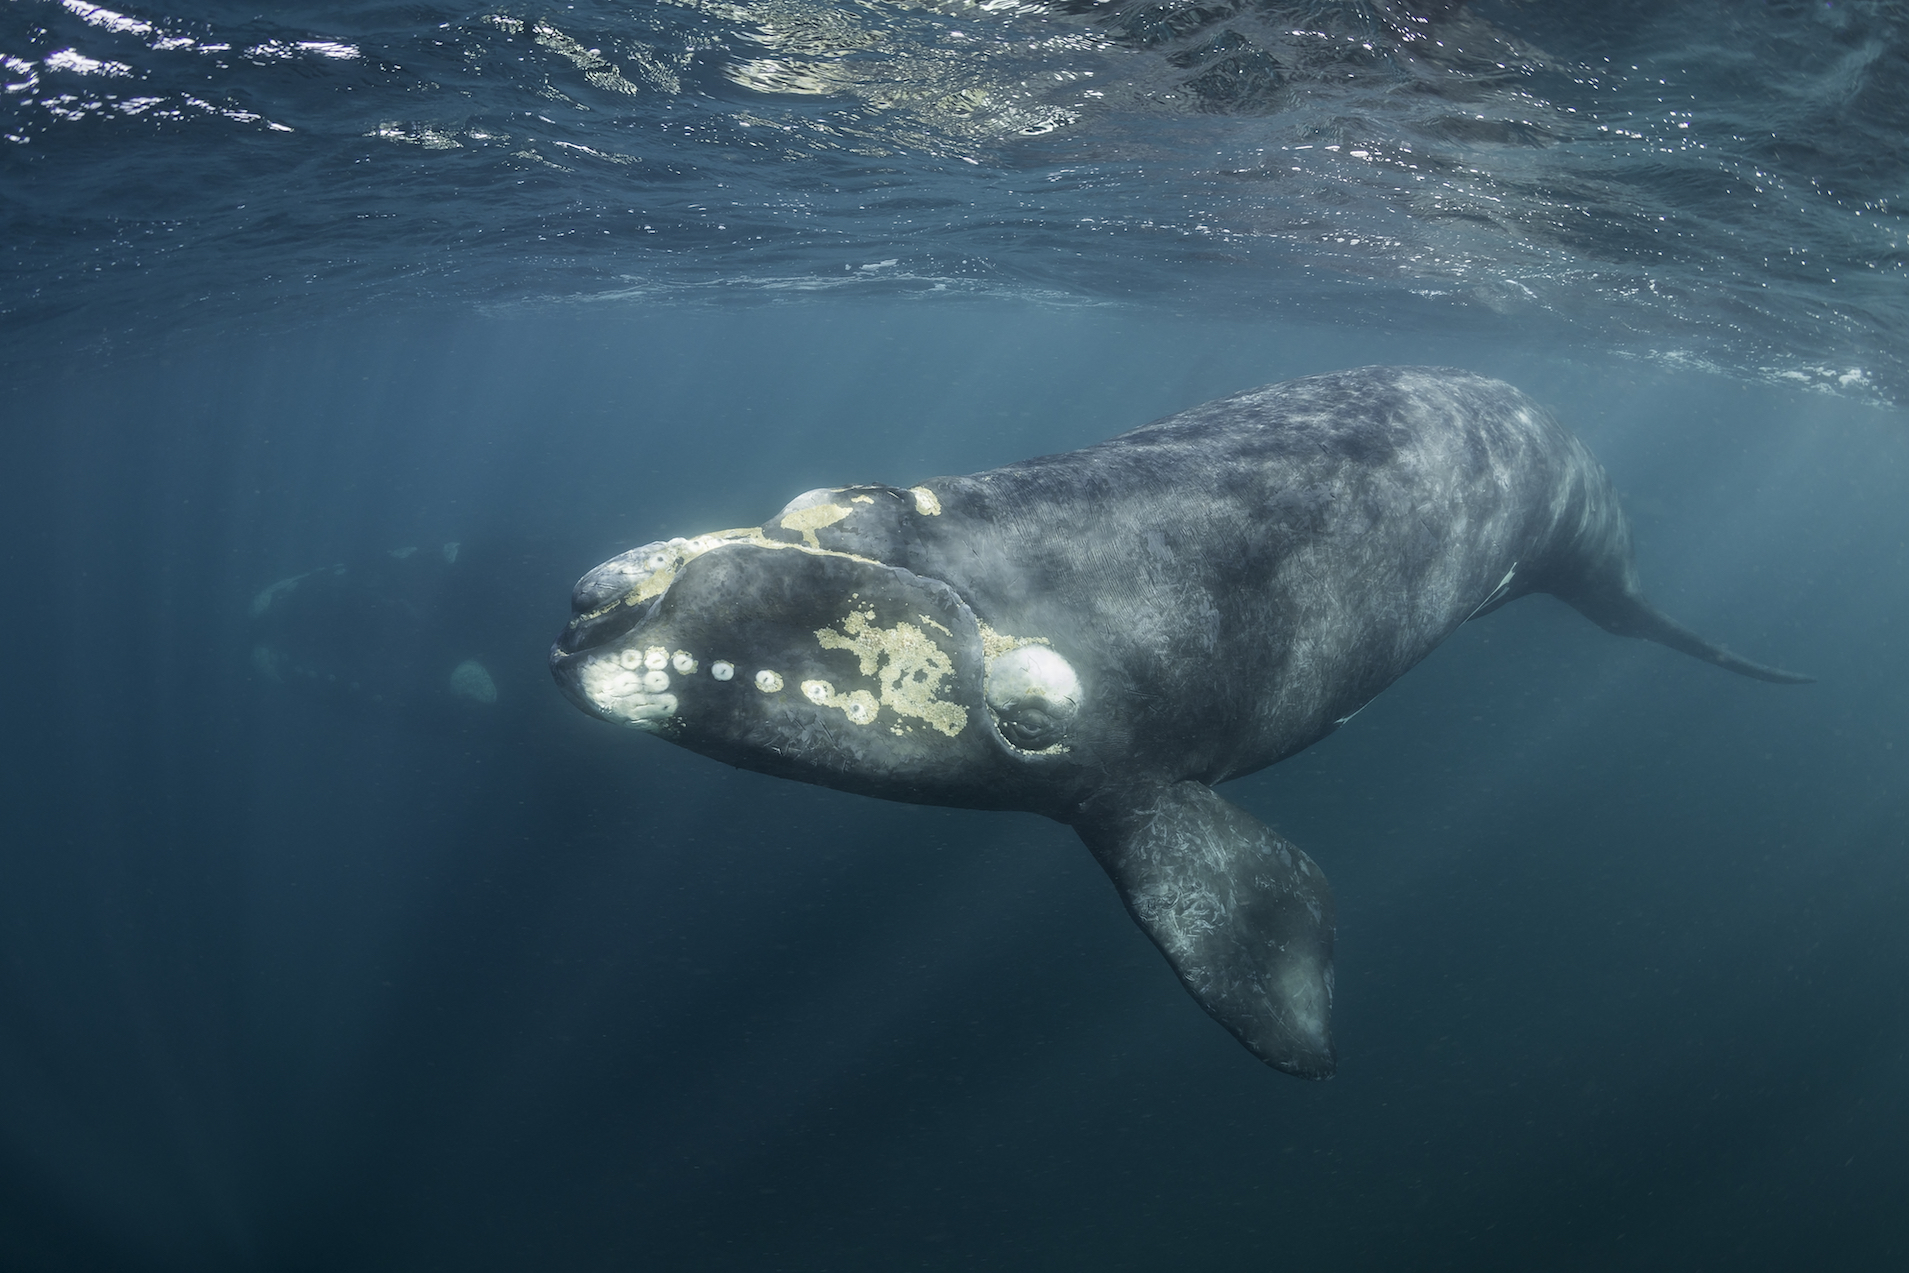 North Atlantic right whales are on the brink of extinction, according to a new report from the federal government.